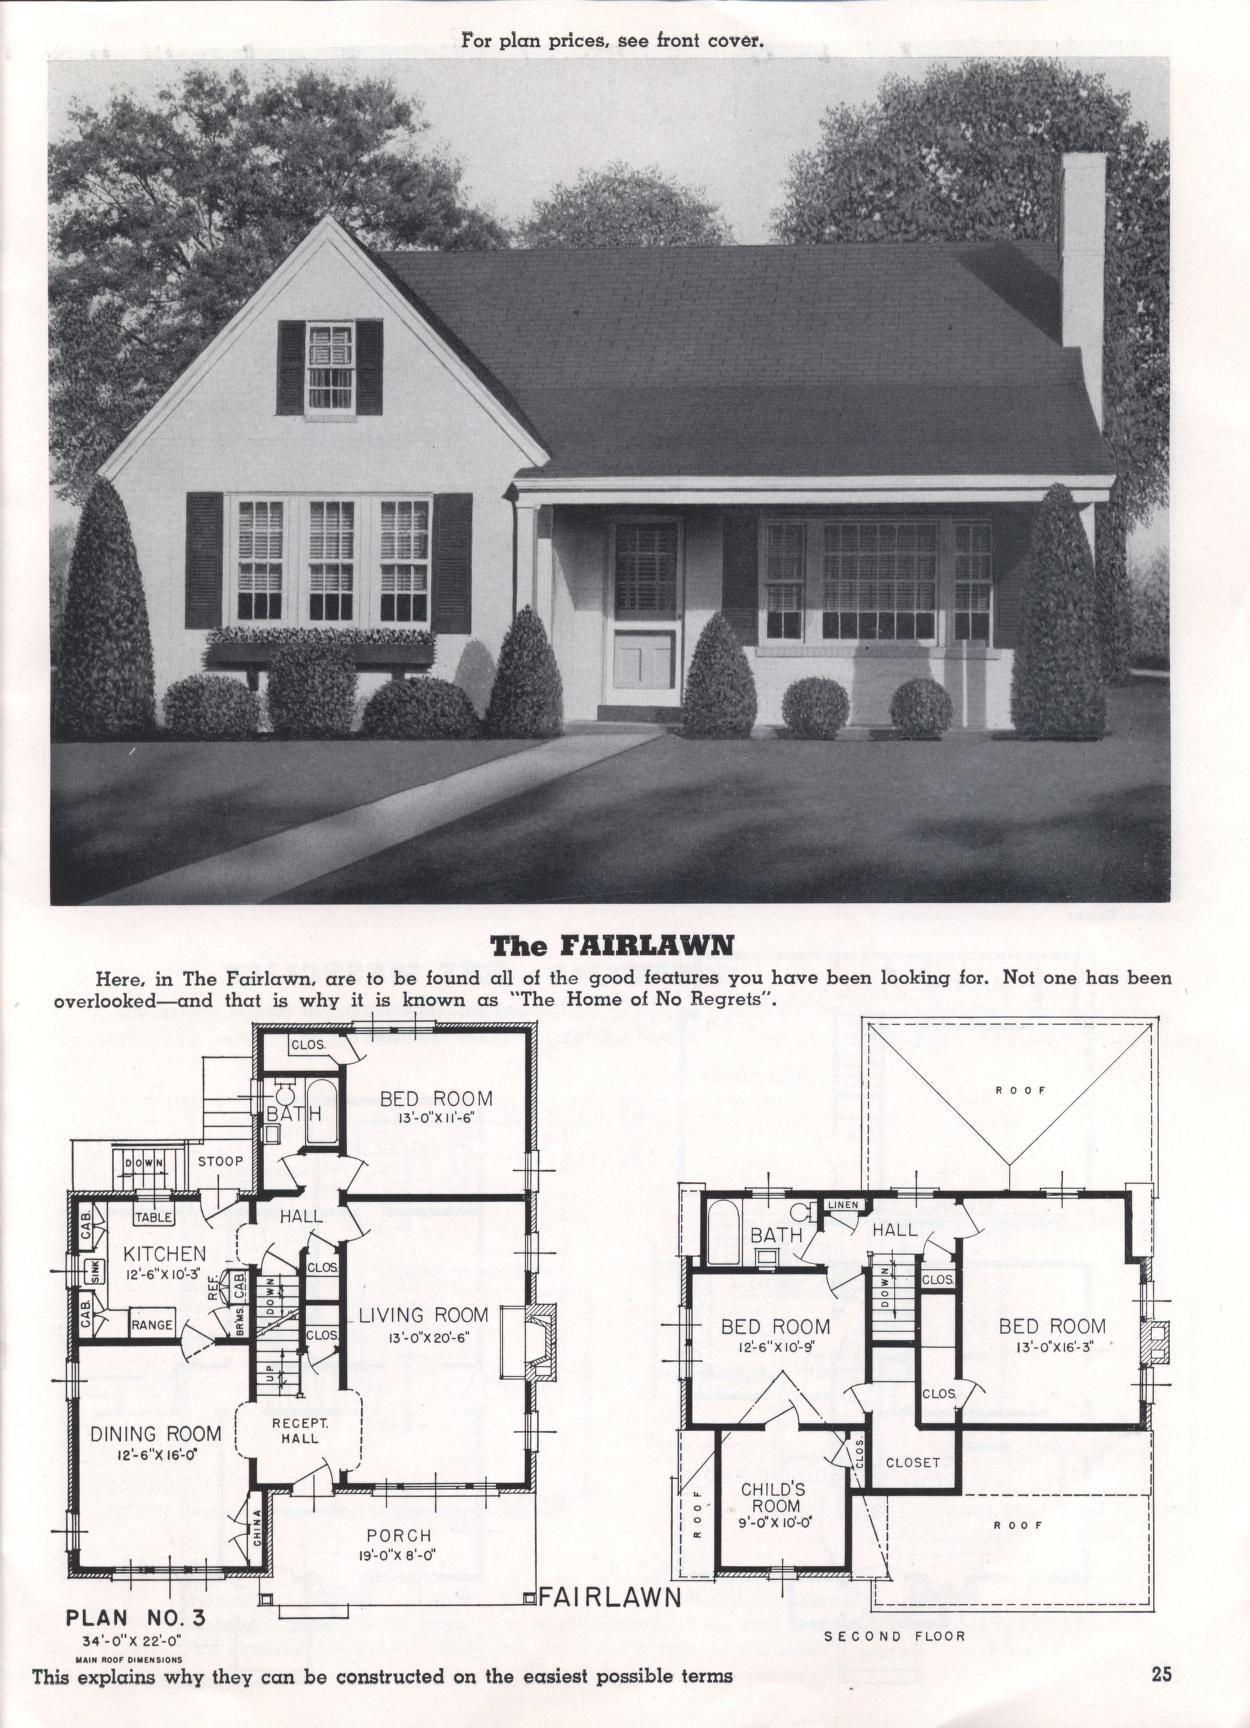 Homes Of Today And Tomorrow B 48 Standard Homes Co Free Download Borrow And Streaming Internet Archive Residential Architecture House Plans Bungalow Floor Plans